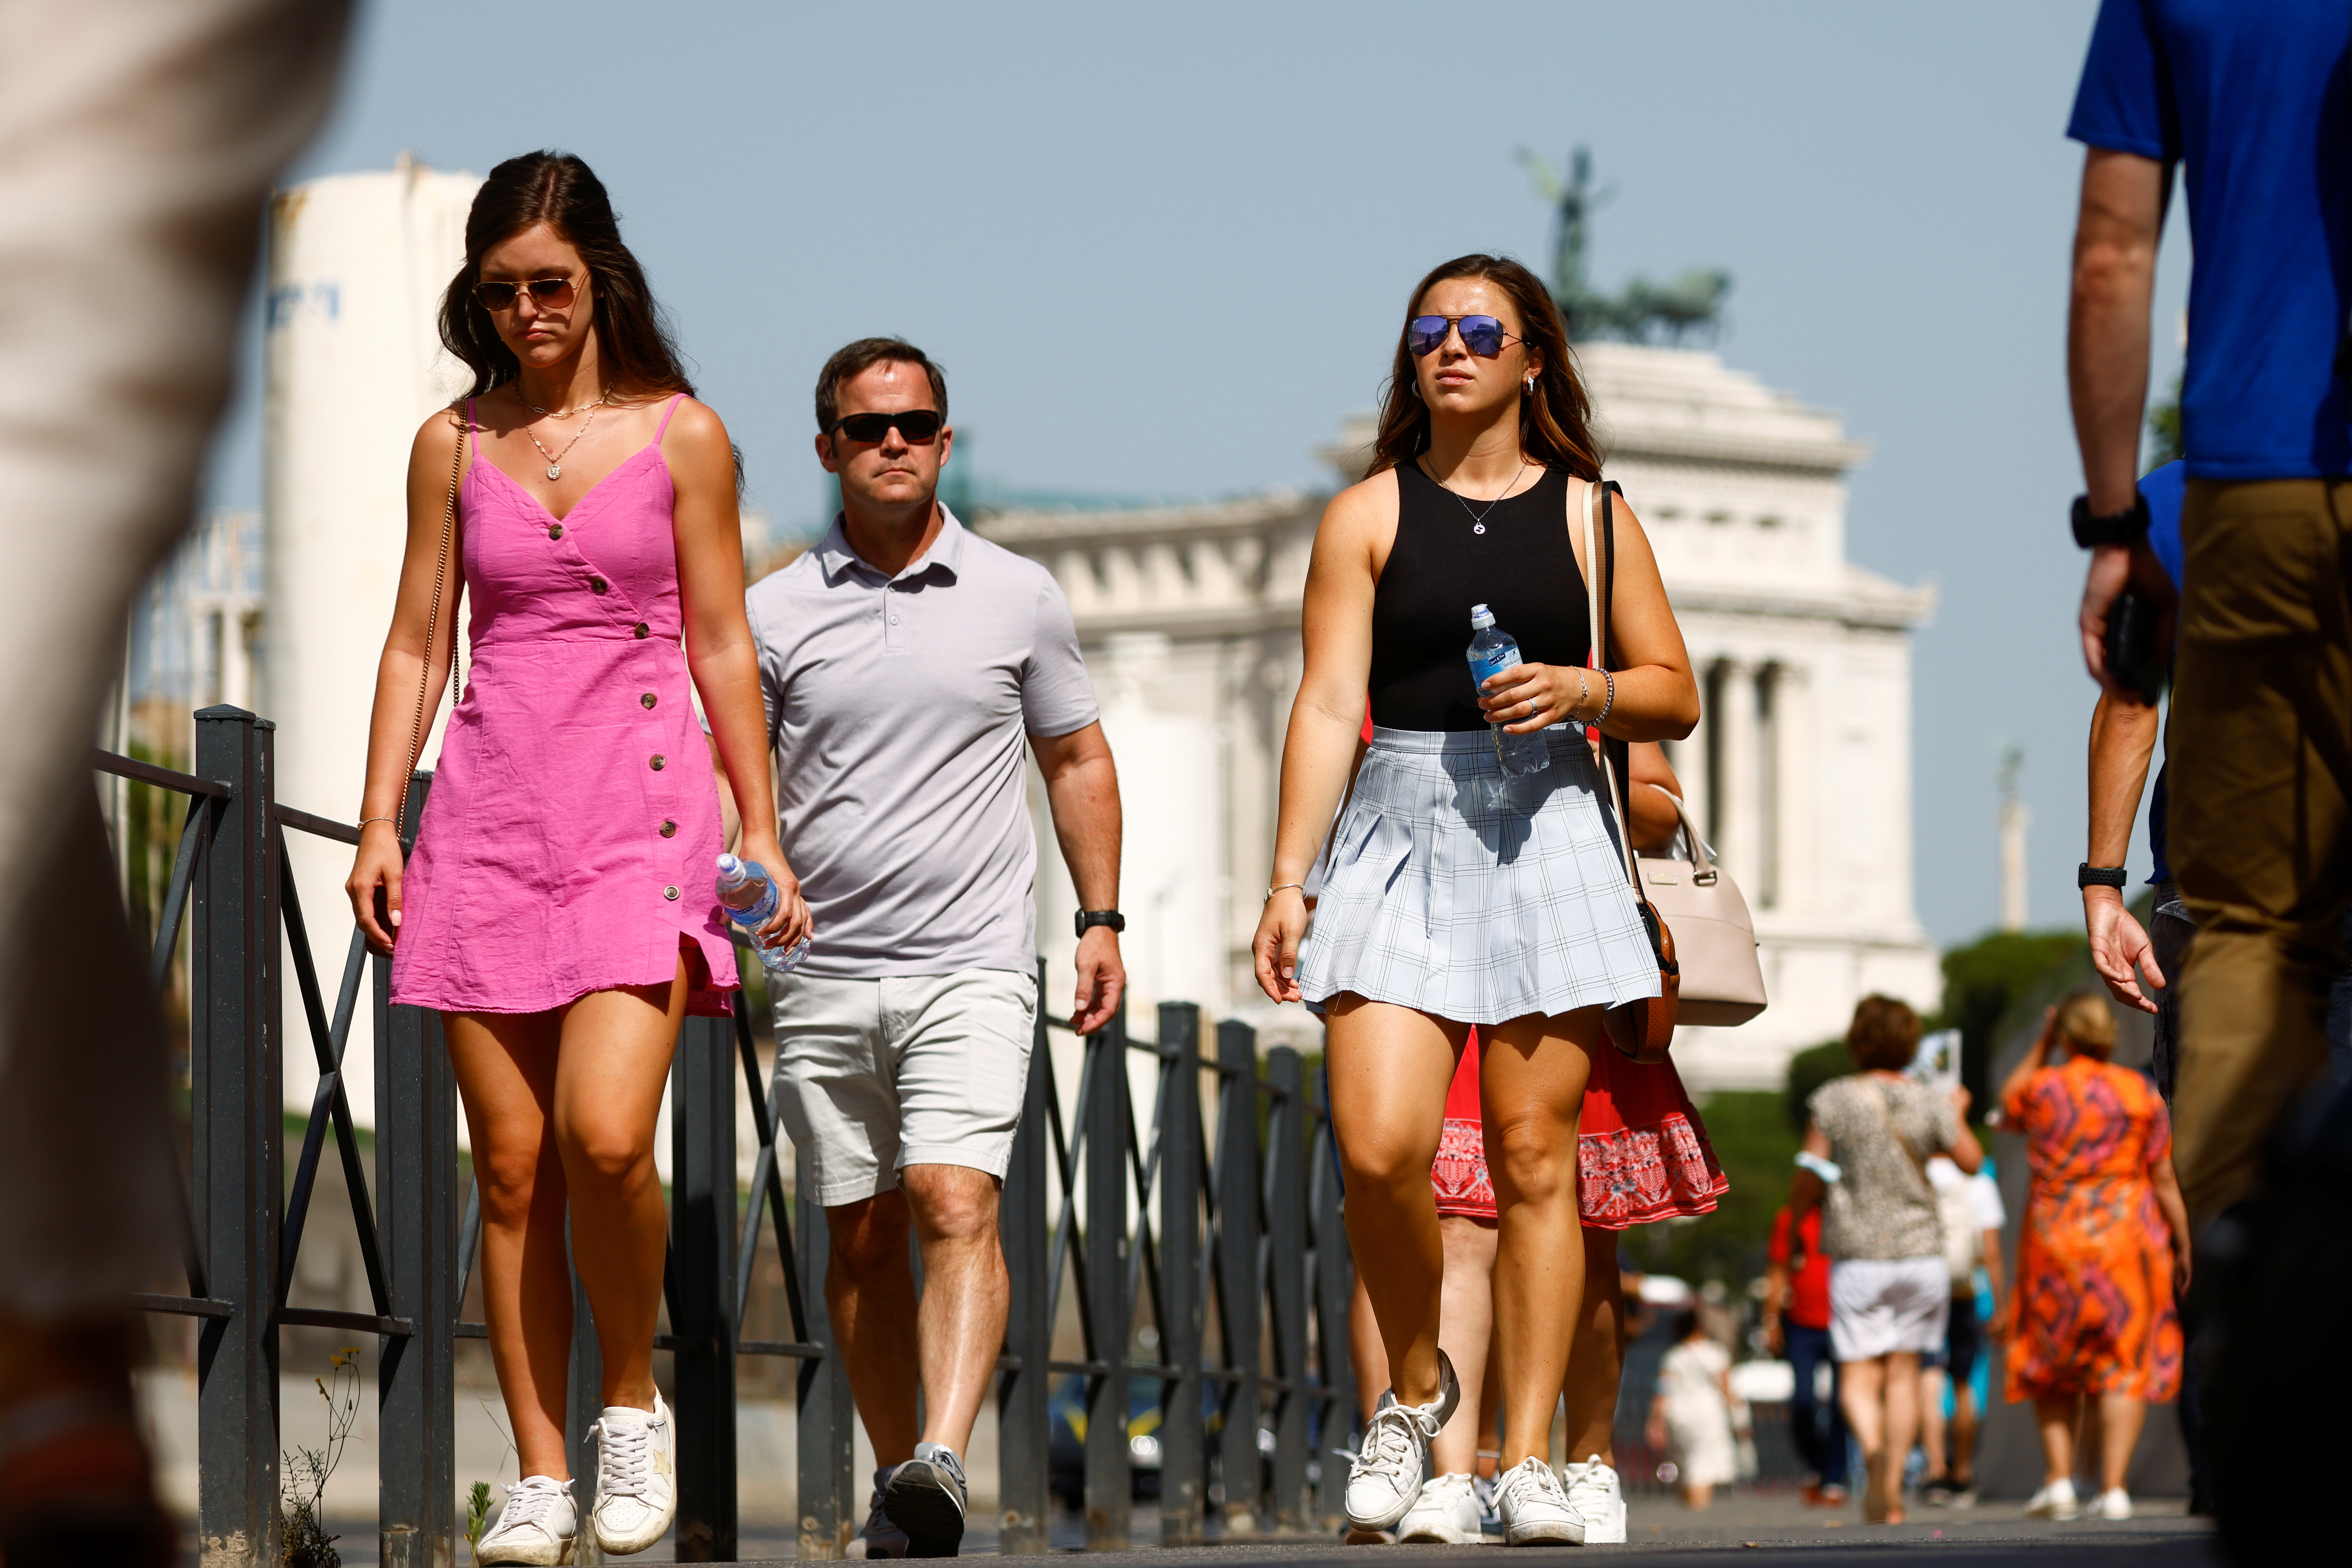 People walk without wearing masks as Italy lifts mandatory masks outdoors thanks to a decline in the coronavirus disease (COVID-19) cases and hospitalisations, in Rome, Italy, June 28, 2021. REUTERS/Guglielmo Mangiapane